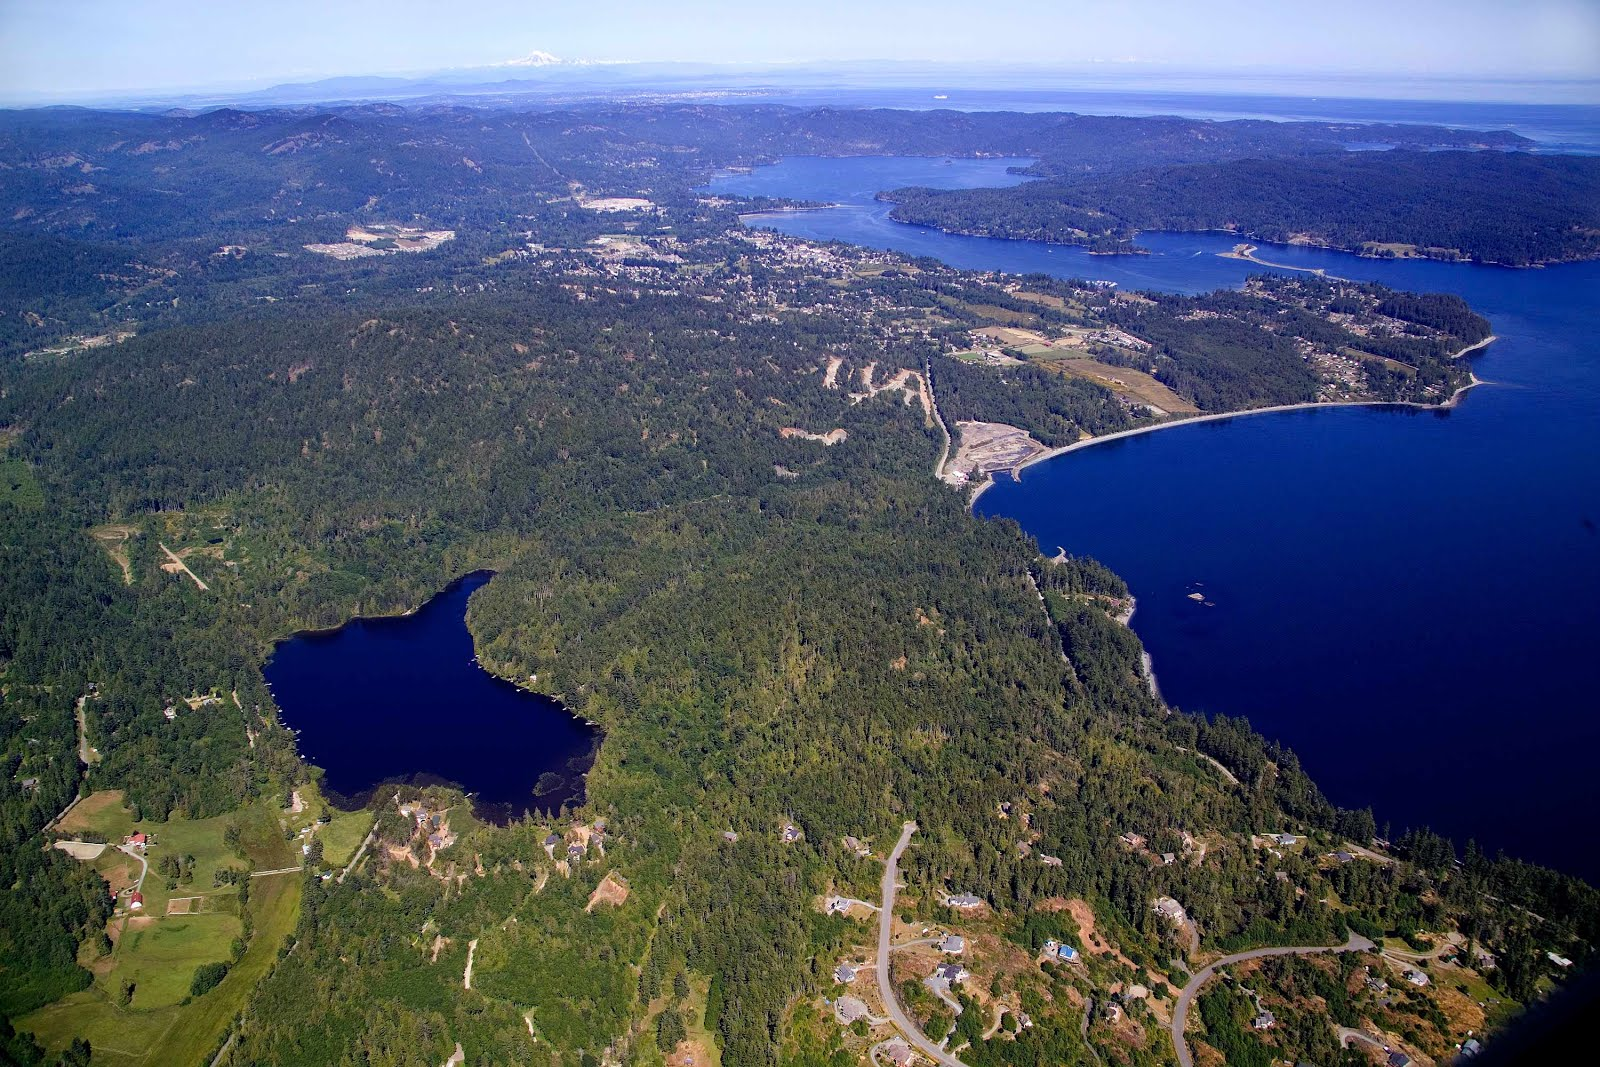 Aerial view of Sooke